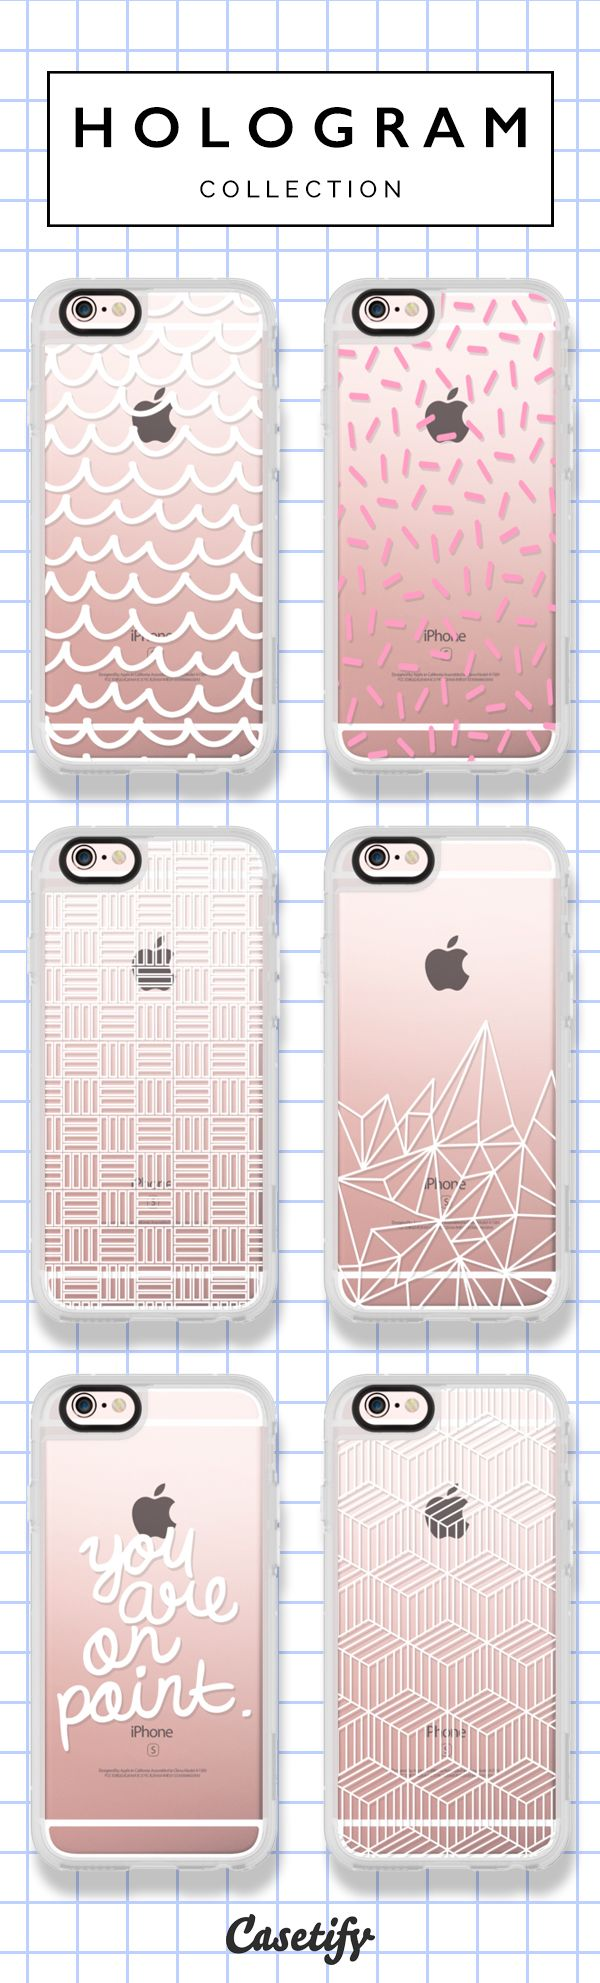 Top 6 minimalist iPhone 6s protective phone cases | Click through to see more iPhone phone case ideas >>> https://www.casetify.com/hologram/collection #minimalist | @casetify